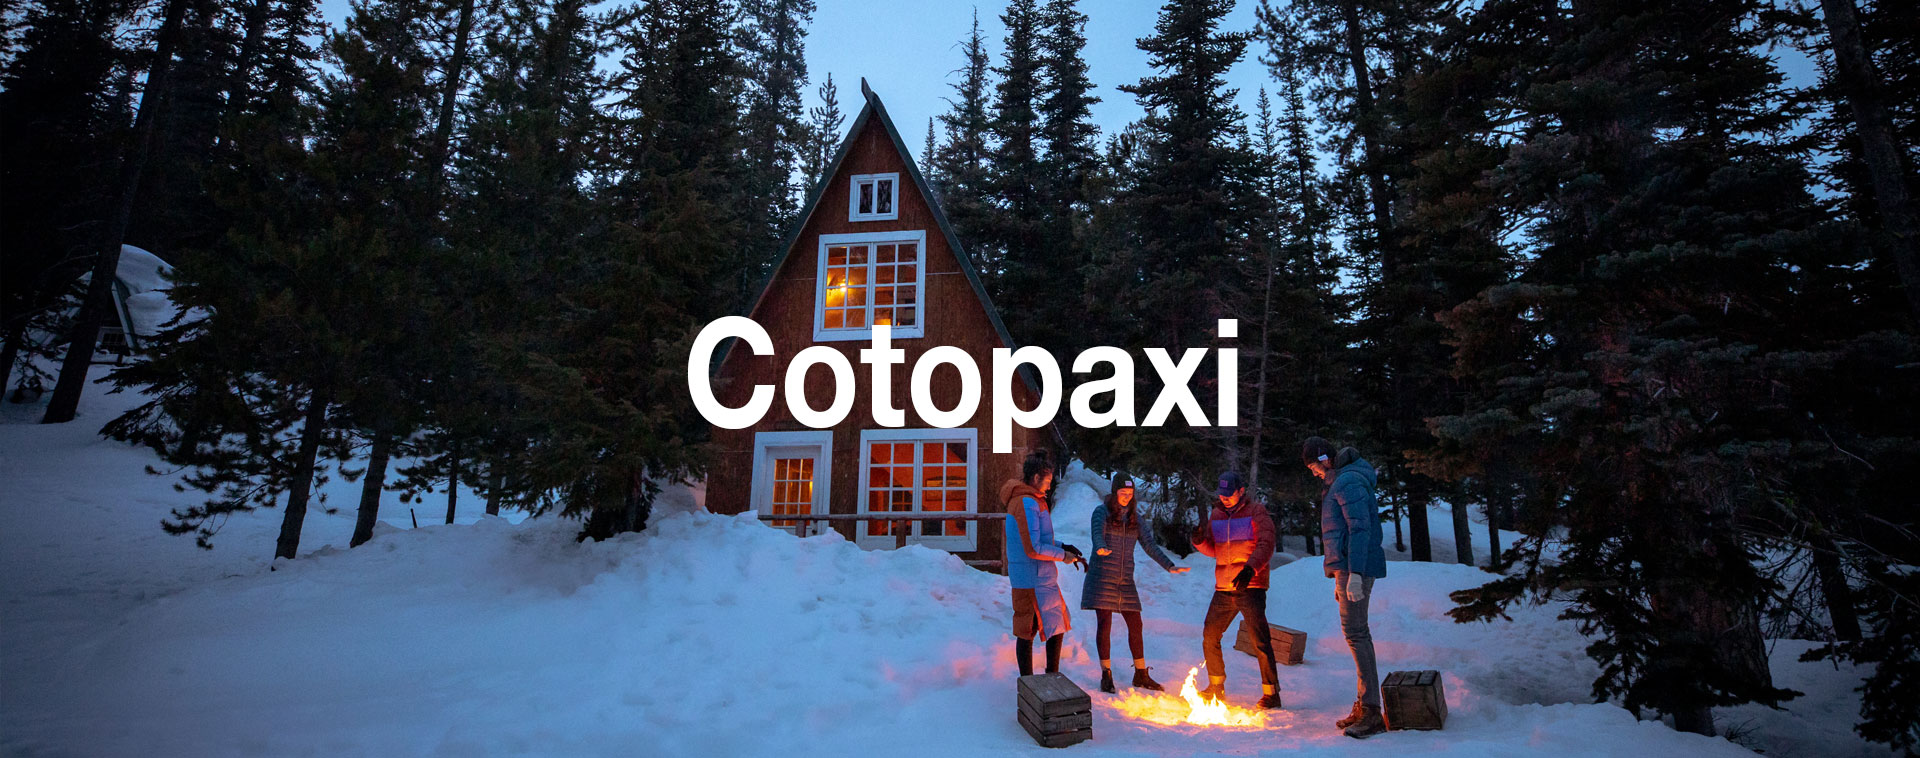 Mountain High Outfitters - Cotopaxi